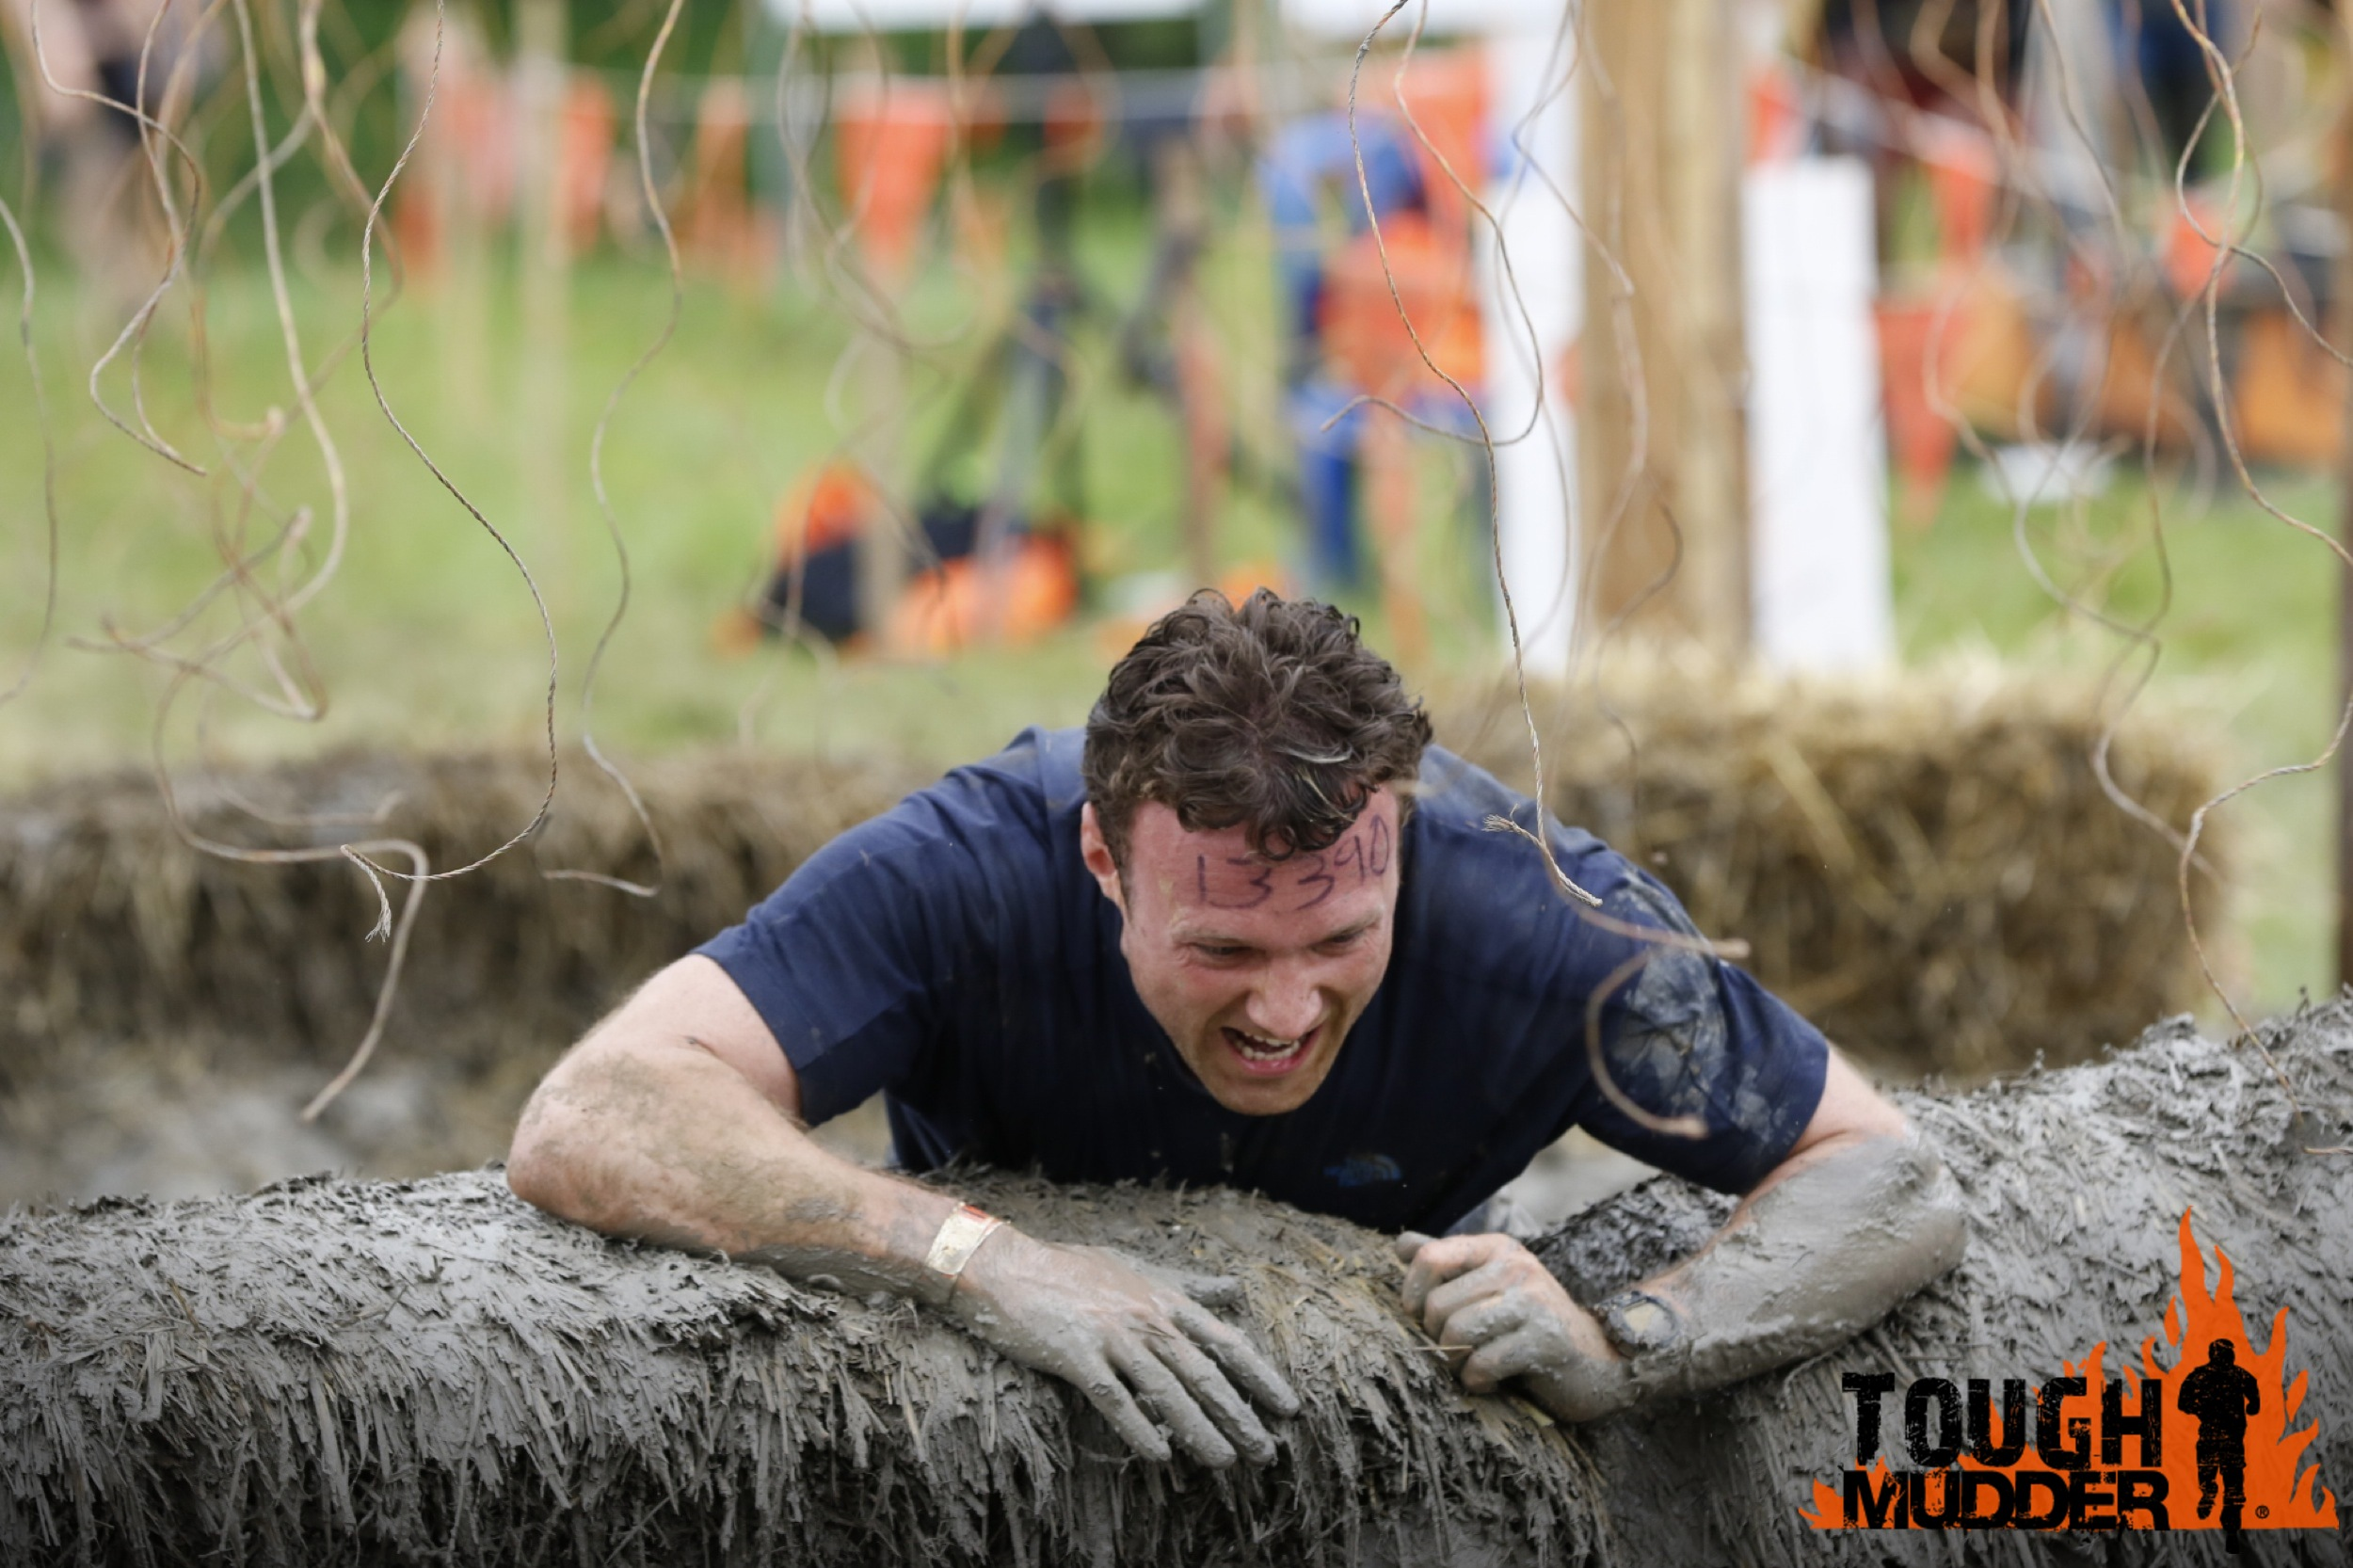 What's it like to do a Tough Mudder?